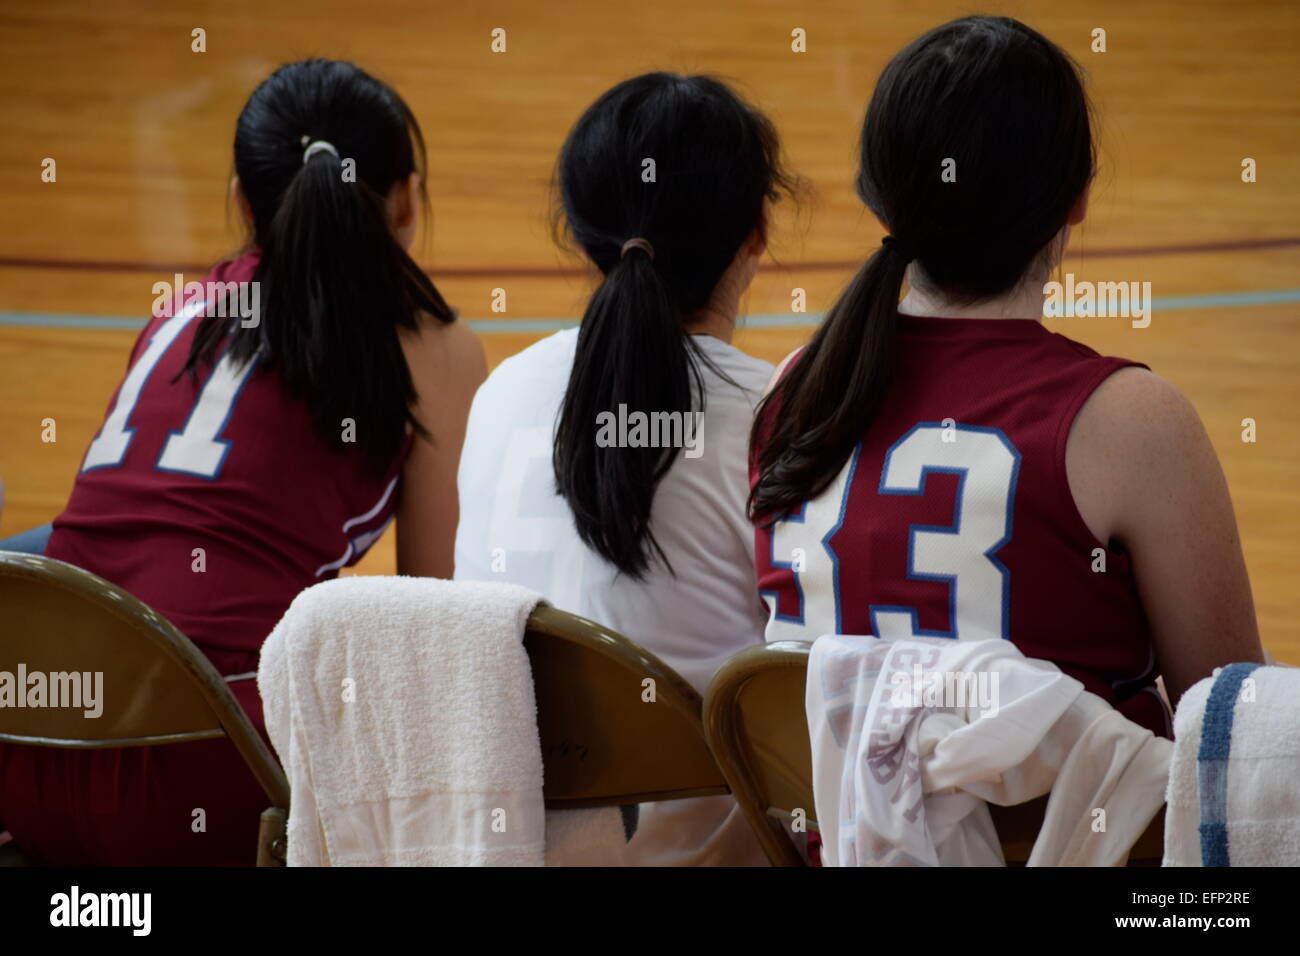 3 female basketball players with ponytails - Stock Image